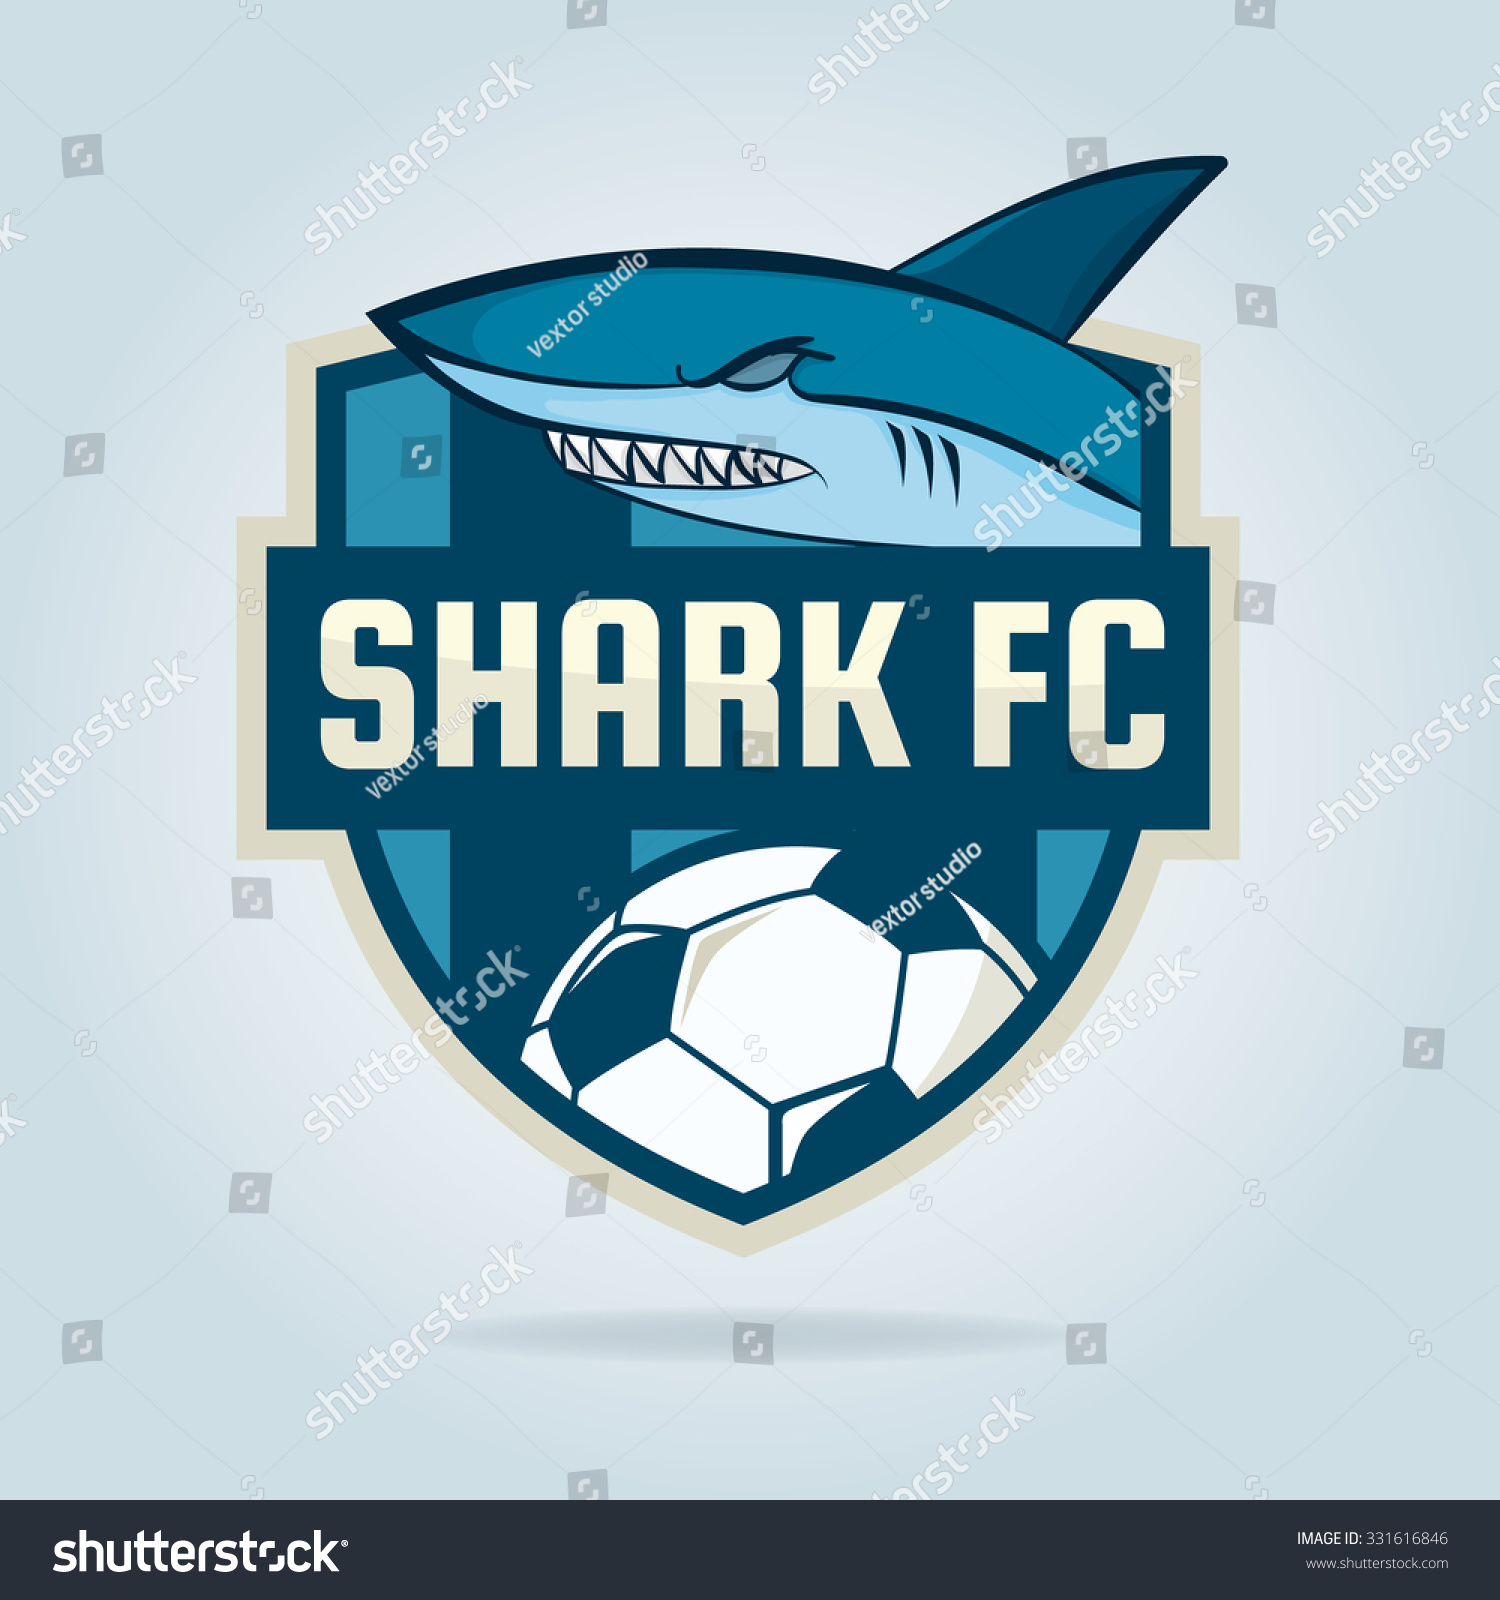 Sharks football logo - photo#22